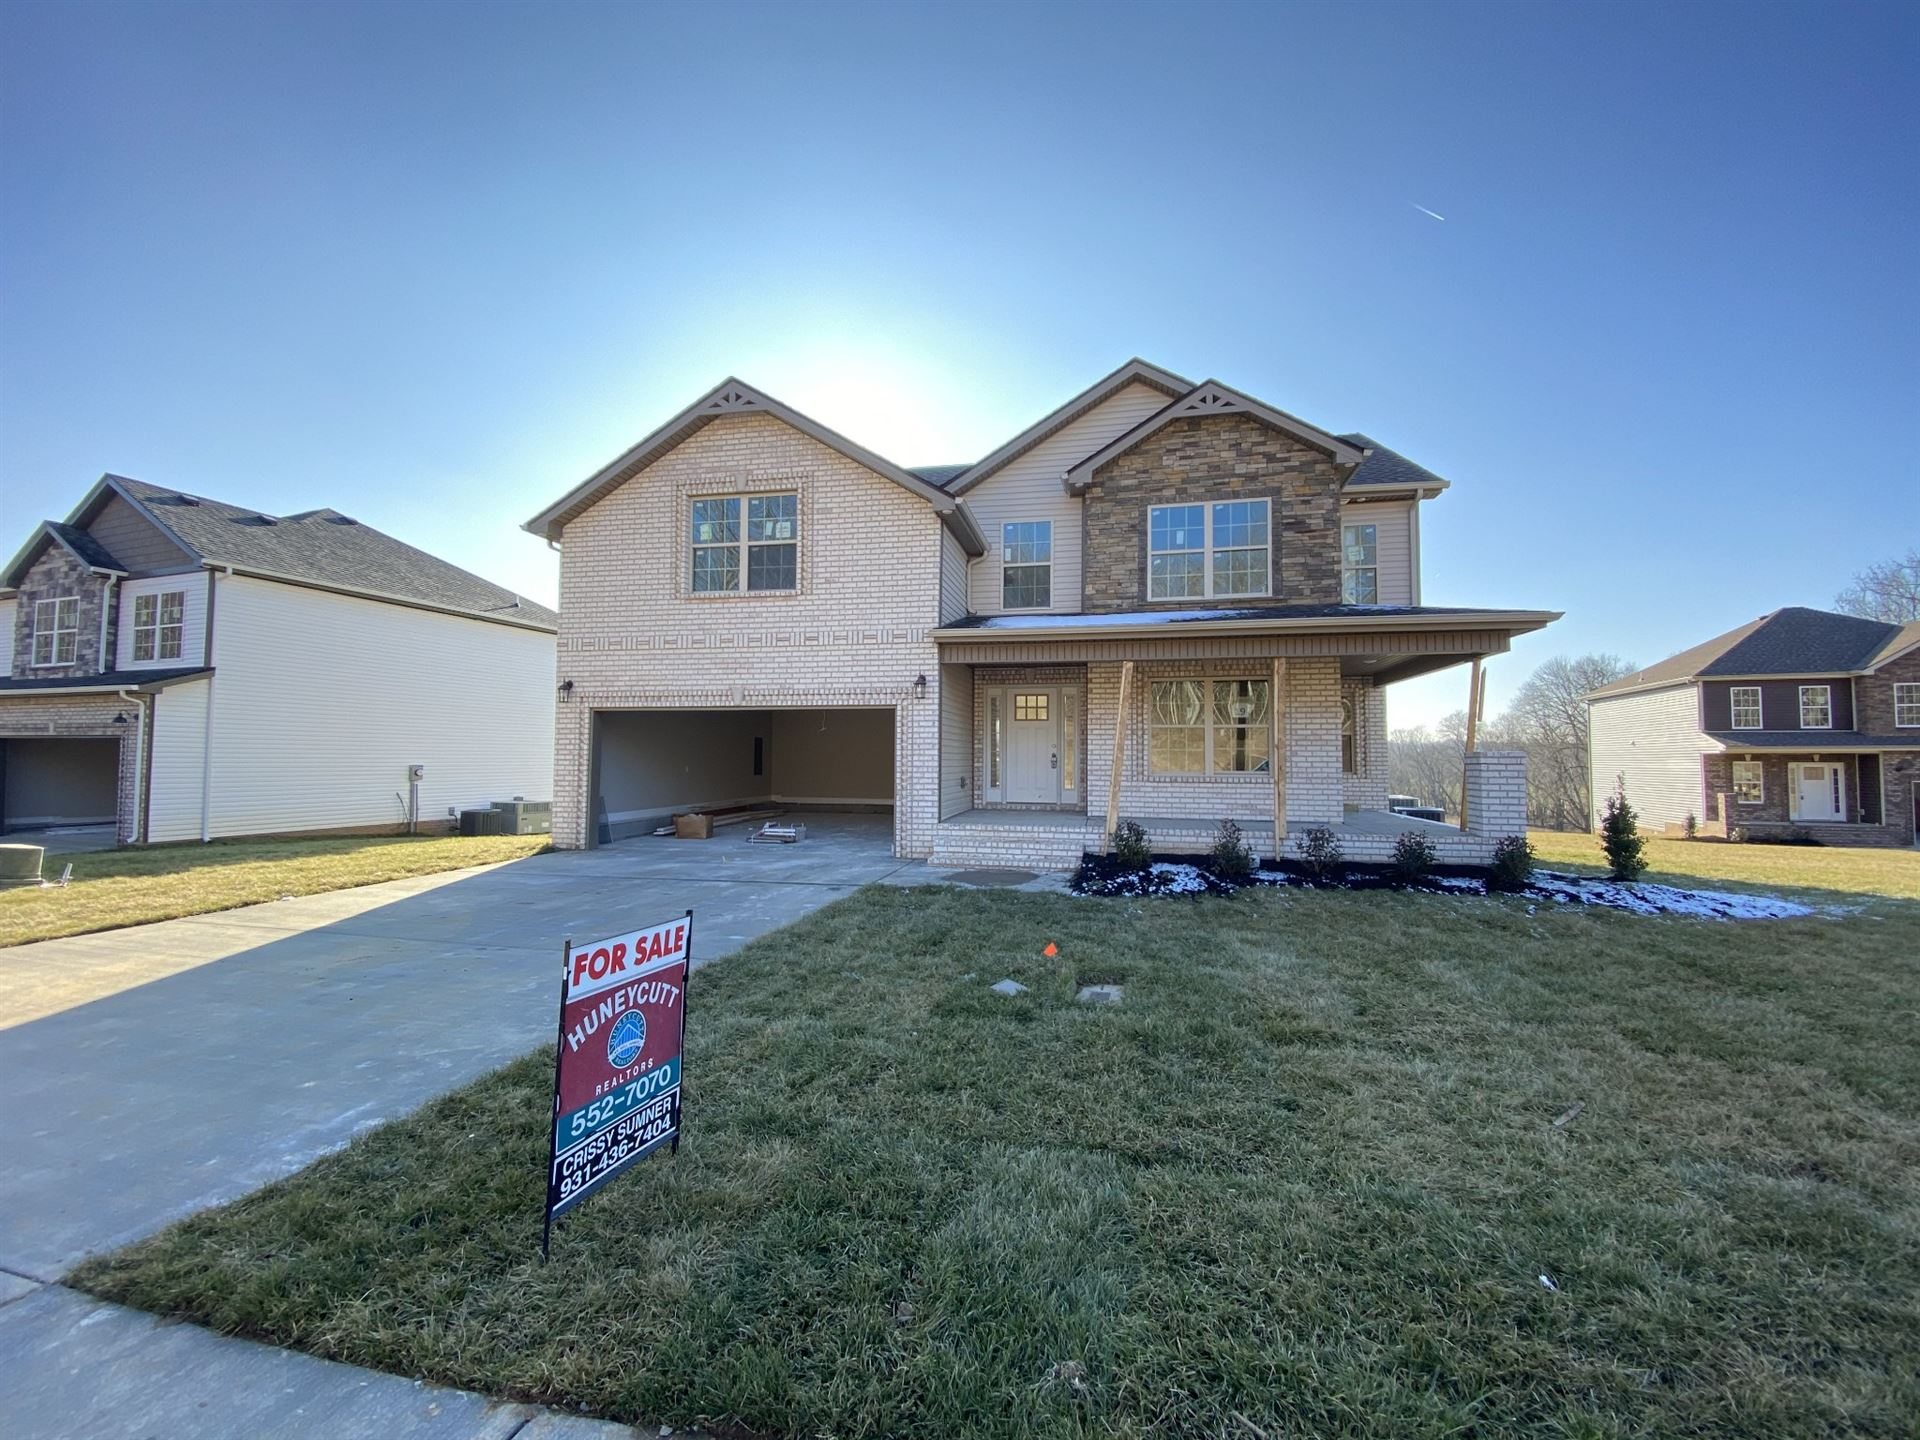 19 River Chase, Clarksville, TN 37043 - MLS#: 2207570